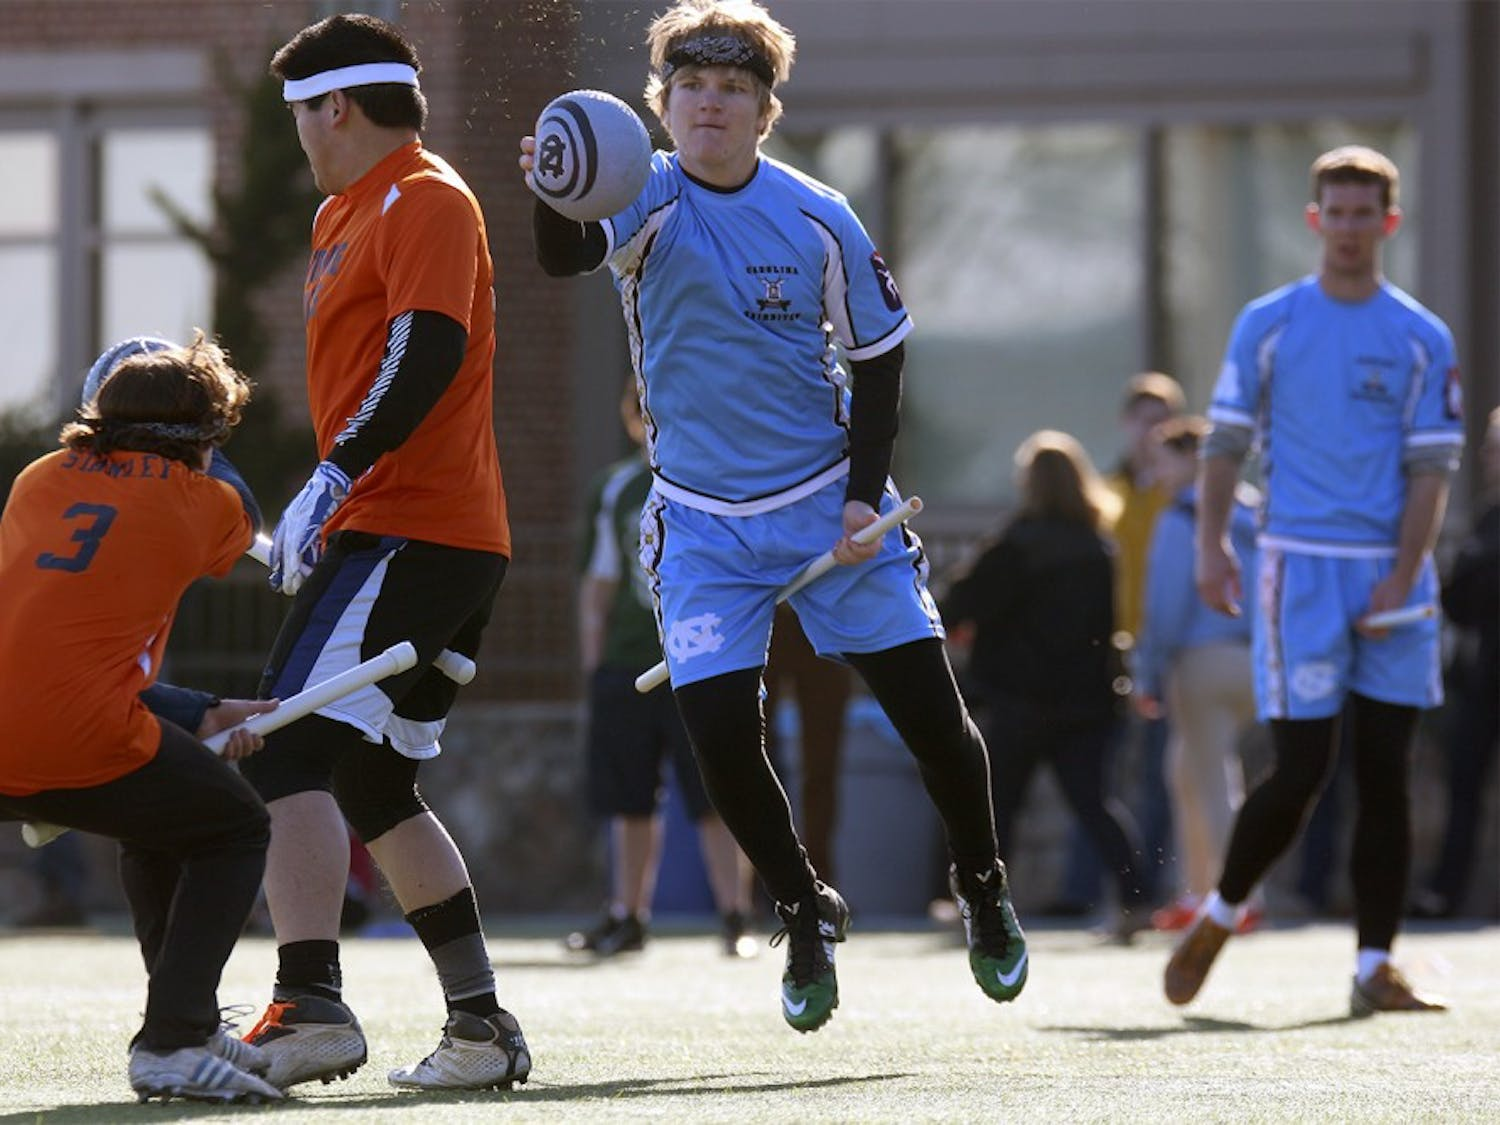 UNC's Quidditch team played UVA as they hosted a tournament Saturday afternoon on Hooker fields.